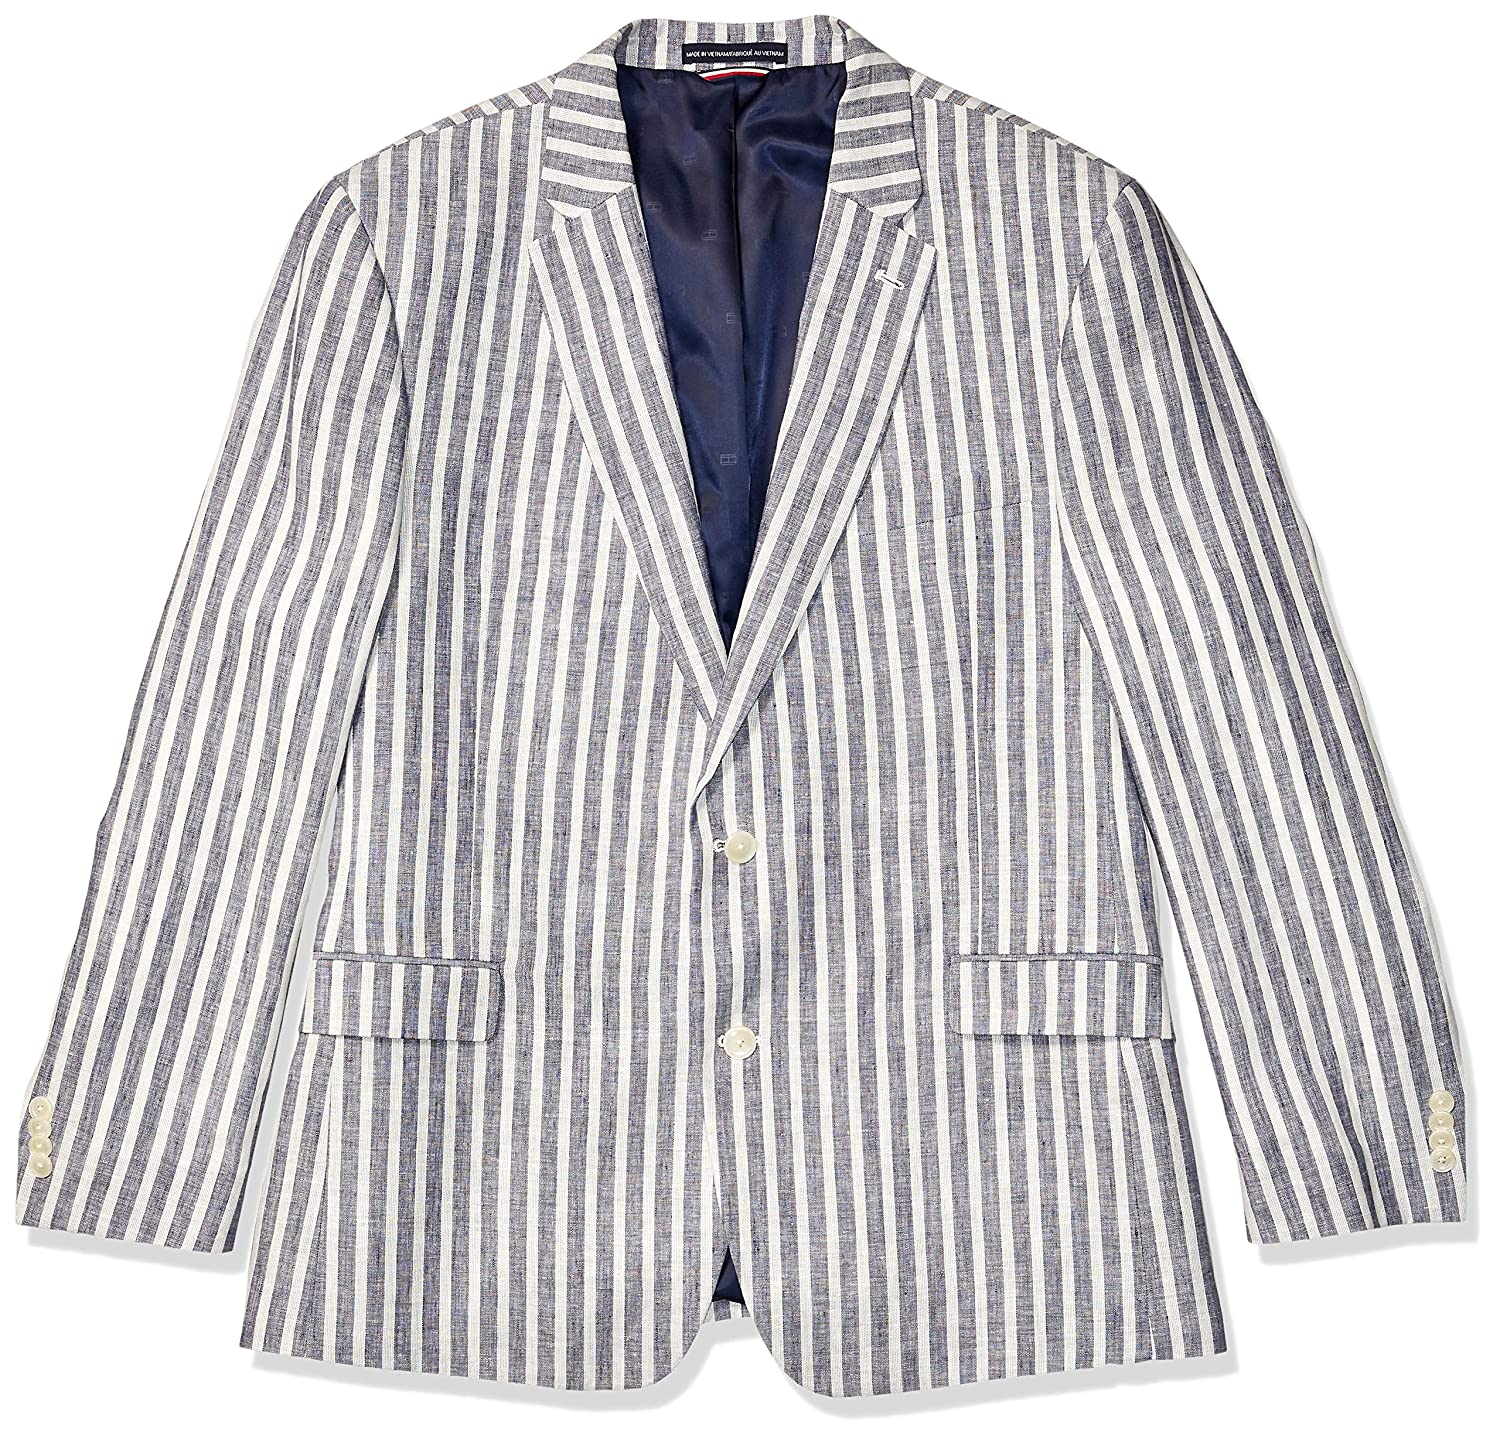 Men's Vintage Style Suits, Classic Suits Tommy Hilfiger Mens Modern Fit Stretch Comfort Blazer $122.54 AT vintagedancer.com